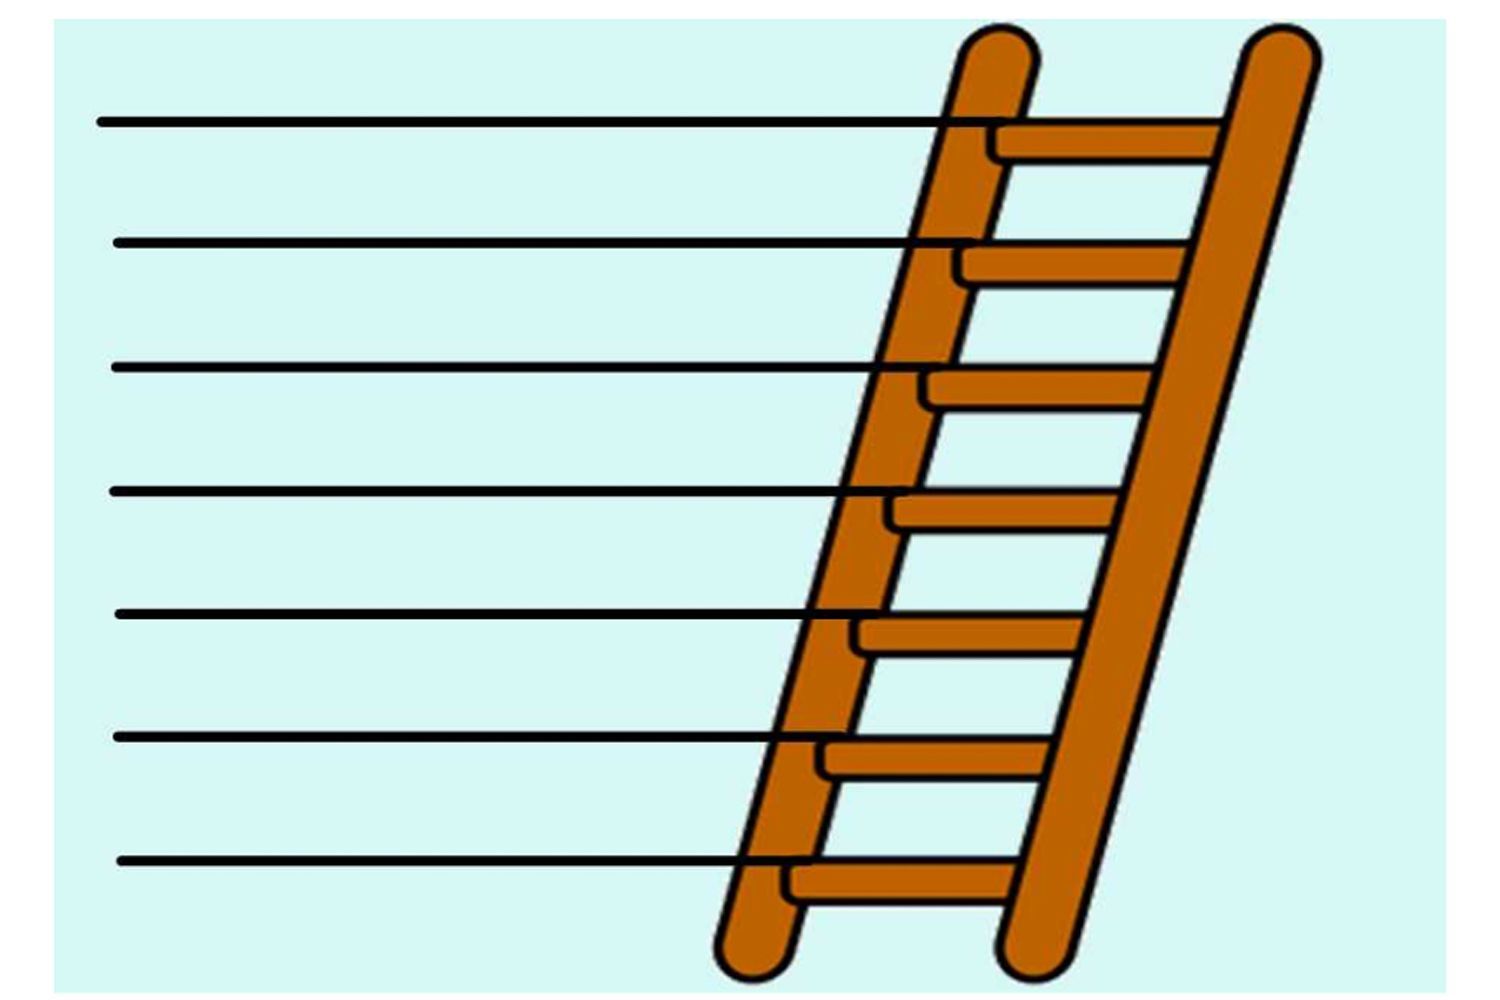 ranking ladder thinking tool template for iwb thinking tools